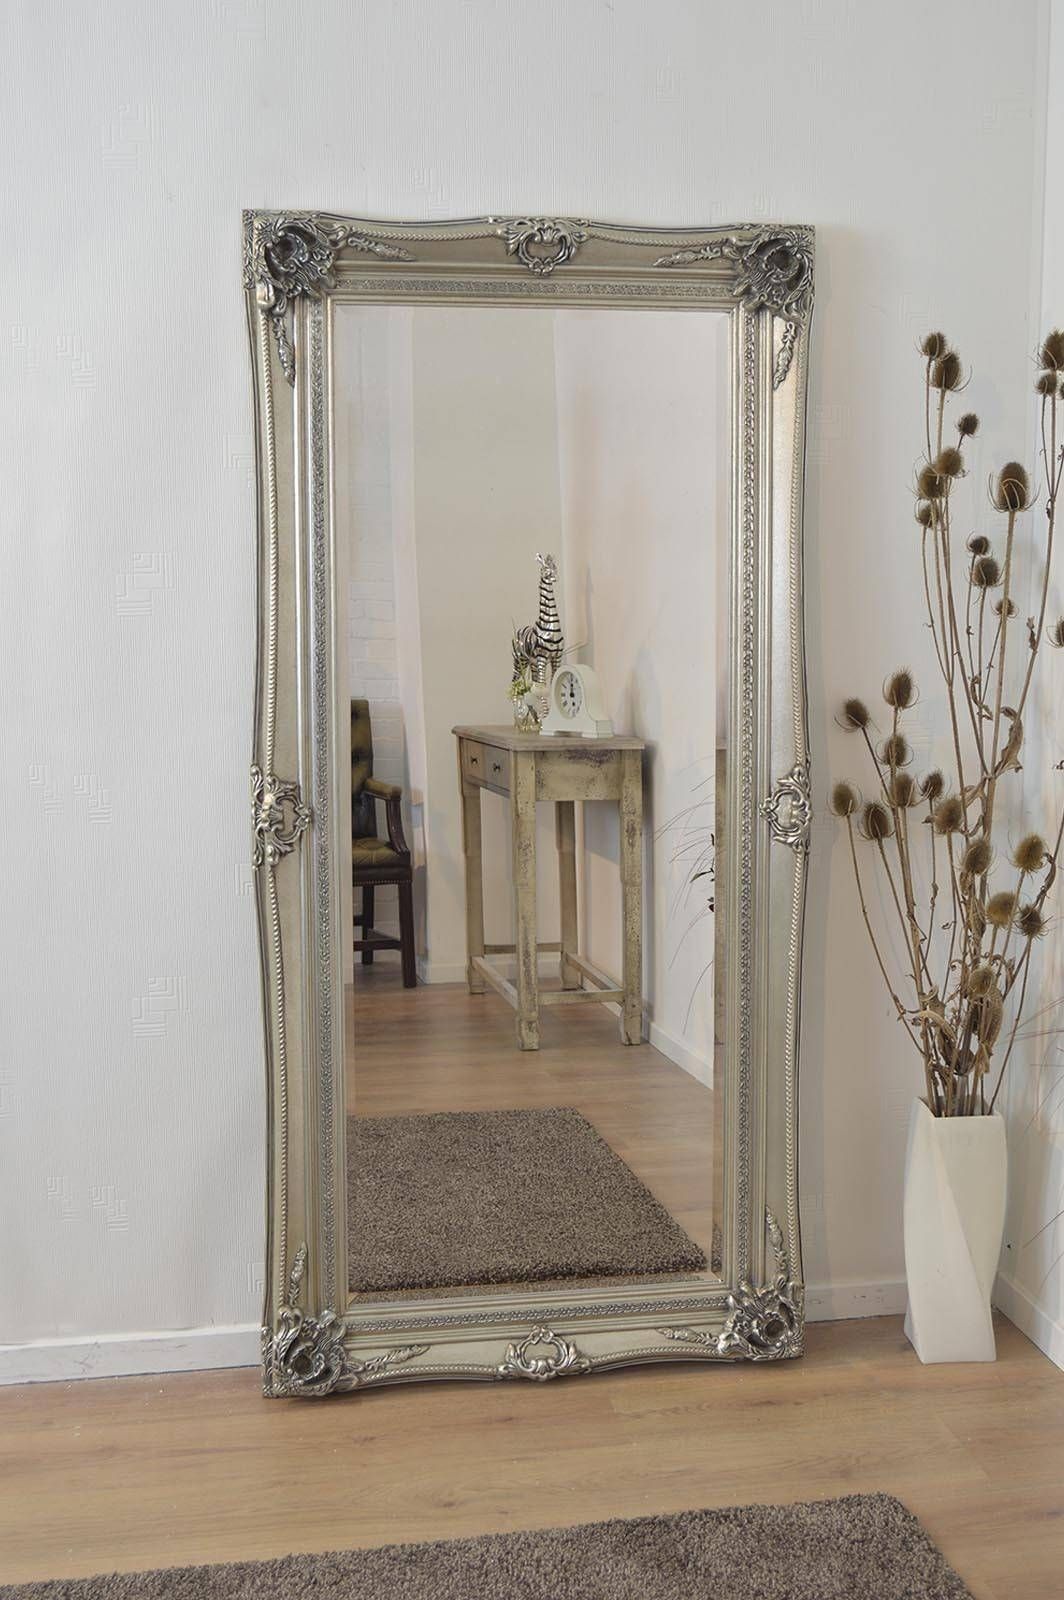 White Distressed Shabby Chic Mirror | Best Home Magazine Gallery intended for Shabby Chic Full Length Mirrors (Image 25 of 25)